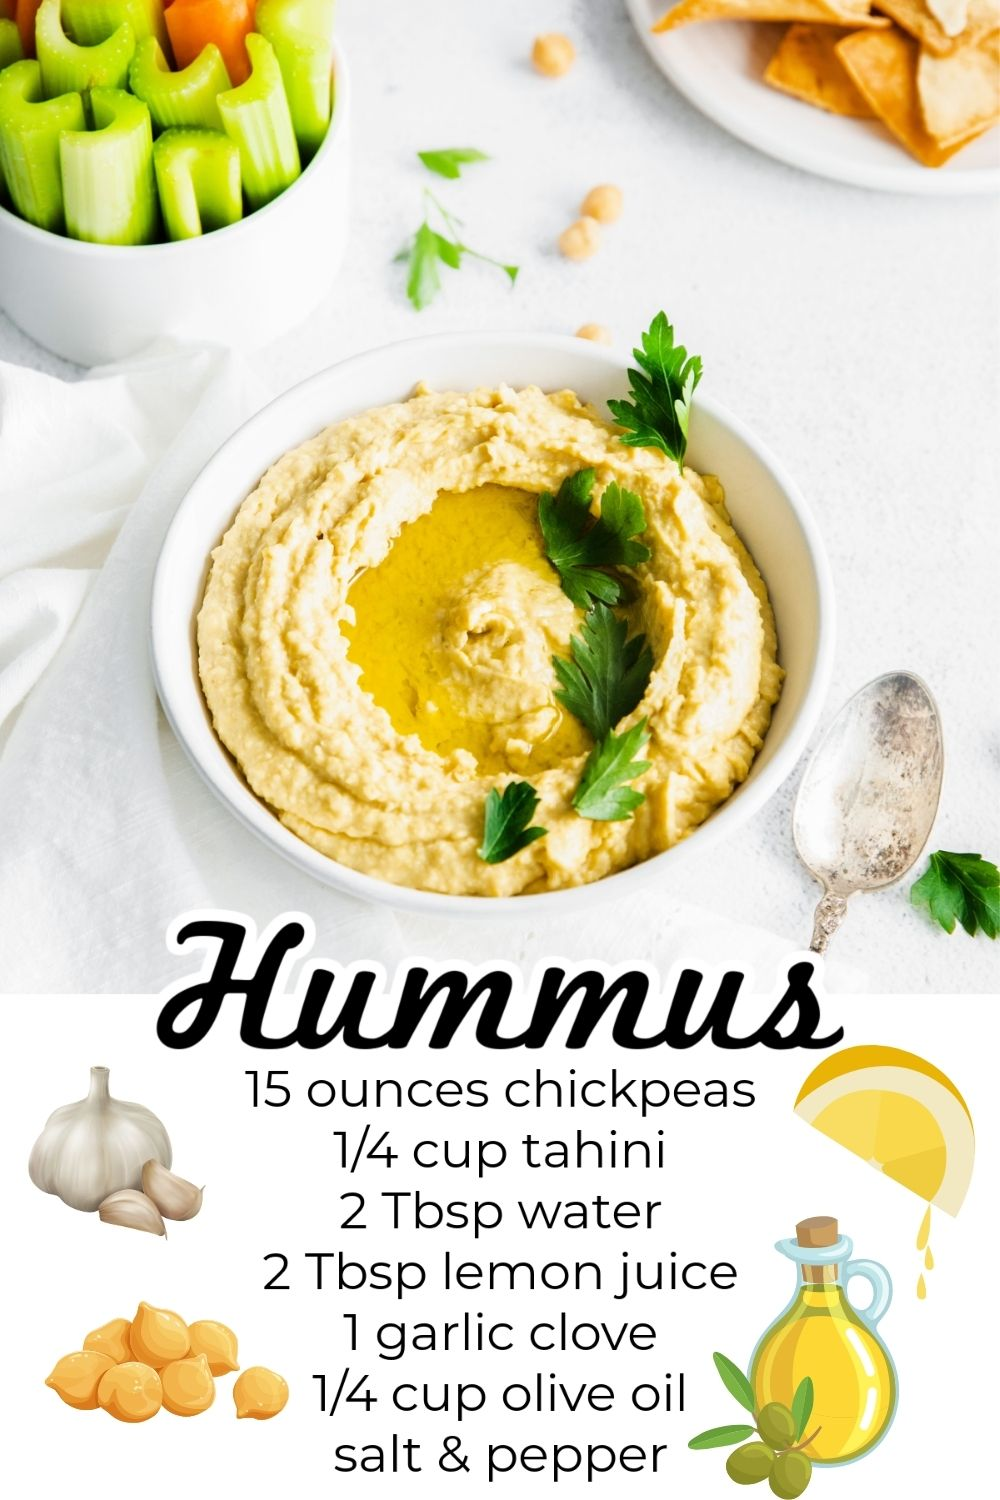 This easy hummus recipe takes just 5 minutes to make in a food processor or high-powered blender. It's a classic snack that is irresistibly smooth and creamy. via @easybudgetrecipes